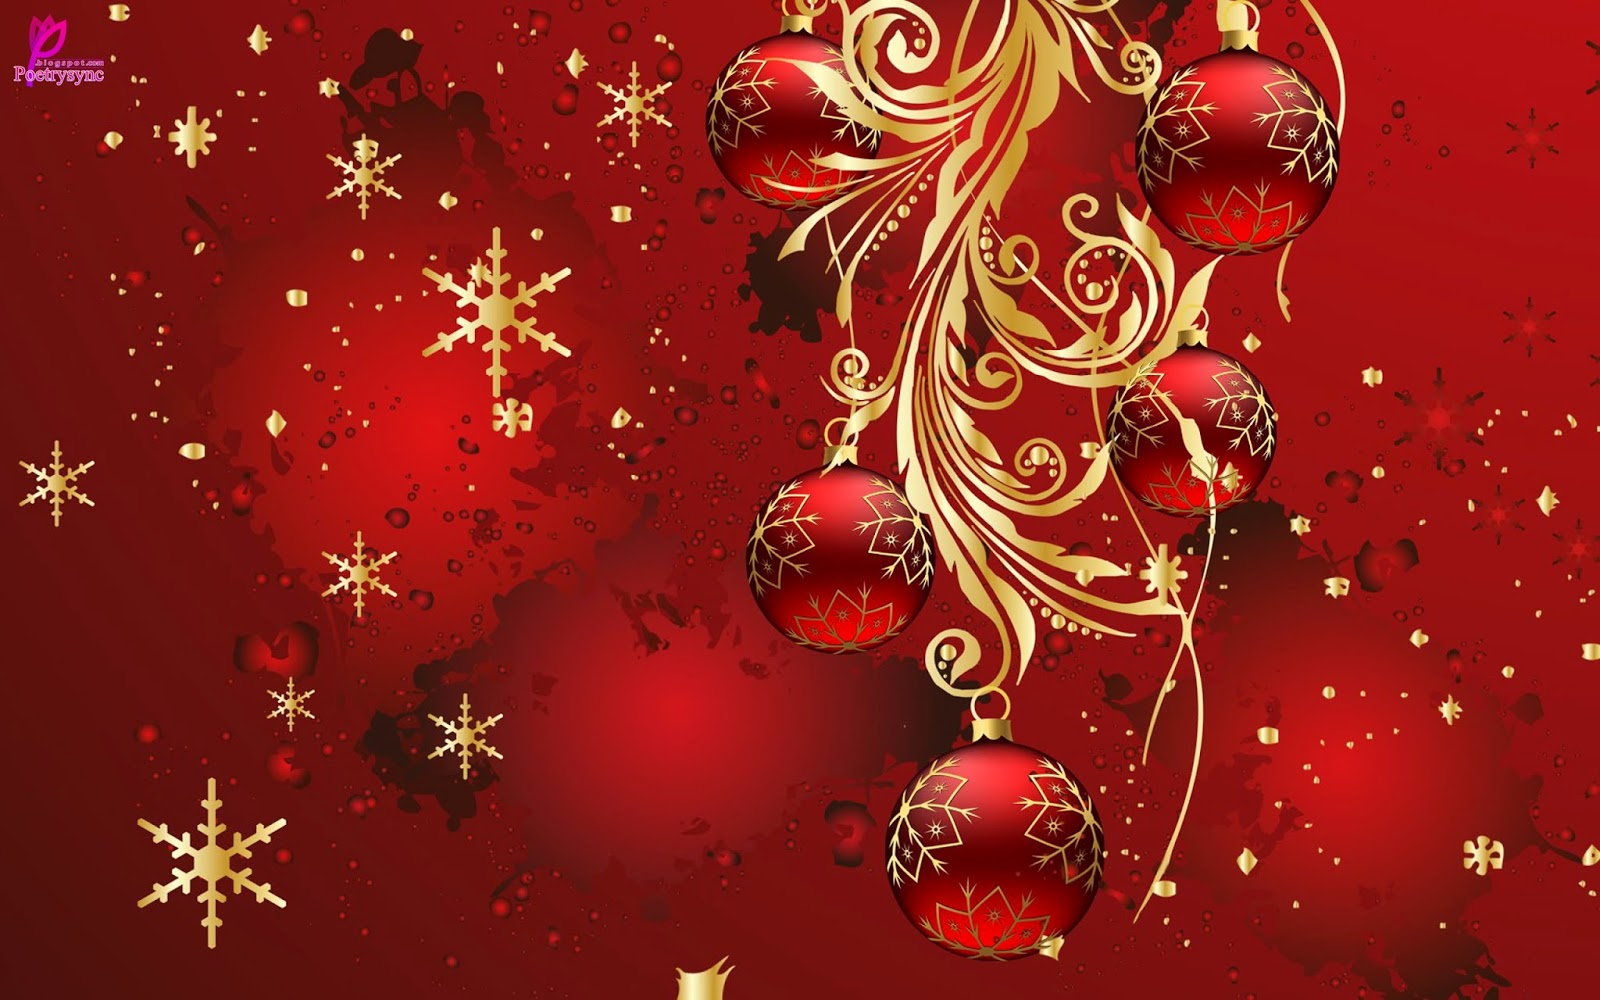 Christmas hd desktop wallpapers wallpapersafari - Free christmas images for desktop wallpaper ...